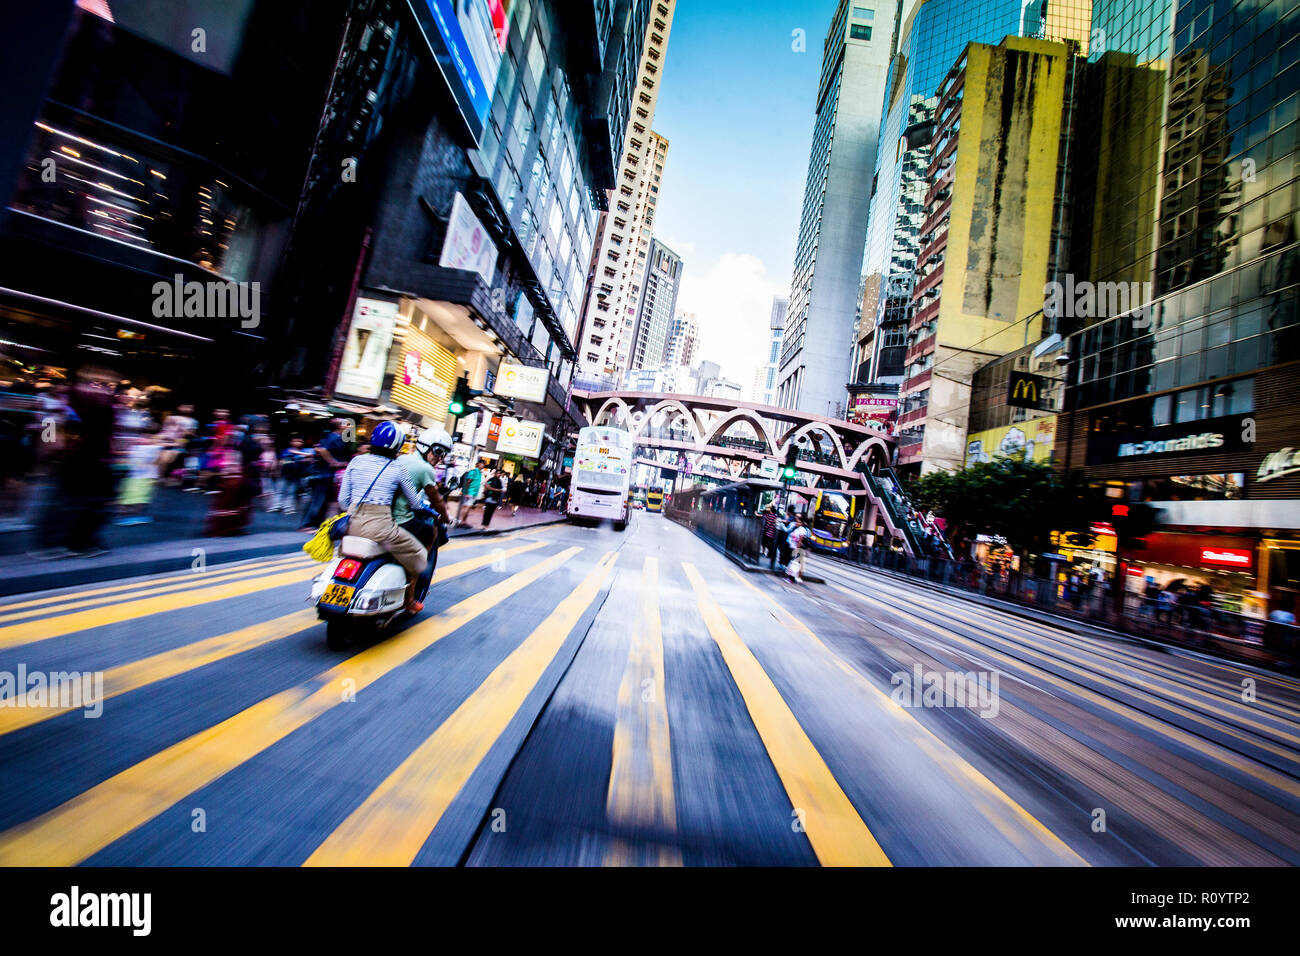 A Vespa passes the crosswalk in the busy shopping area of Causeway Bay, Hong Kong. - Stock Image